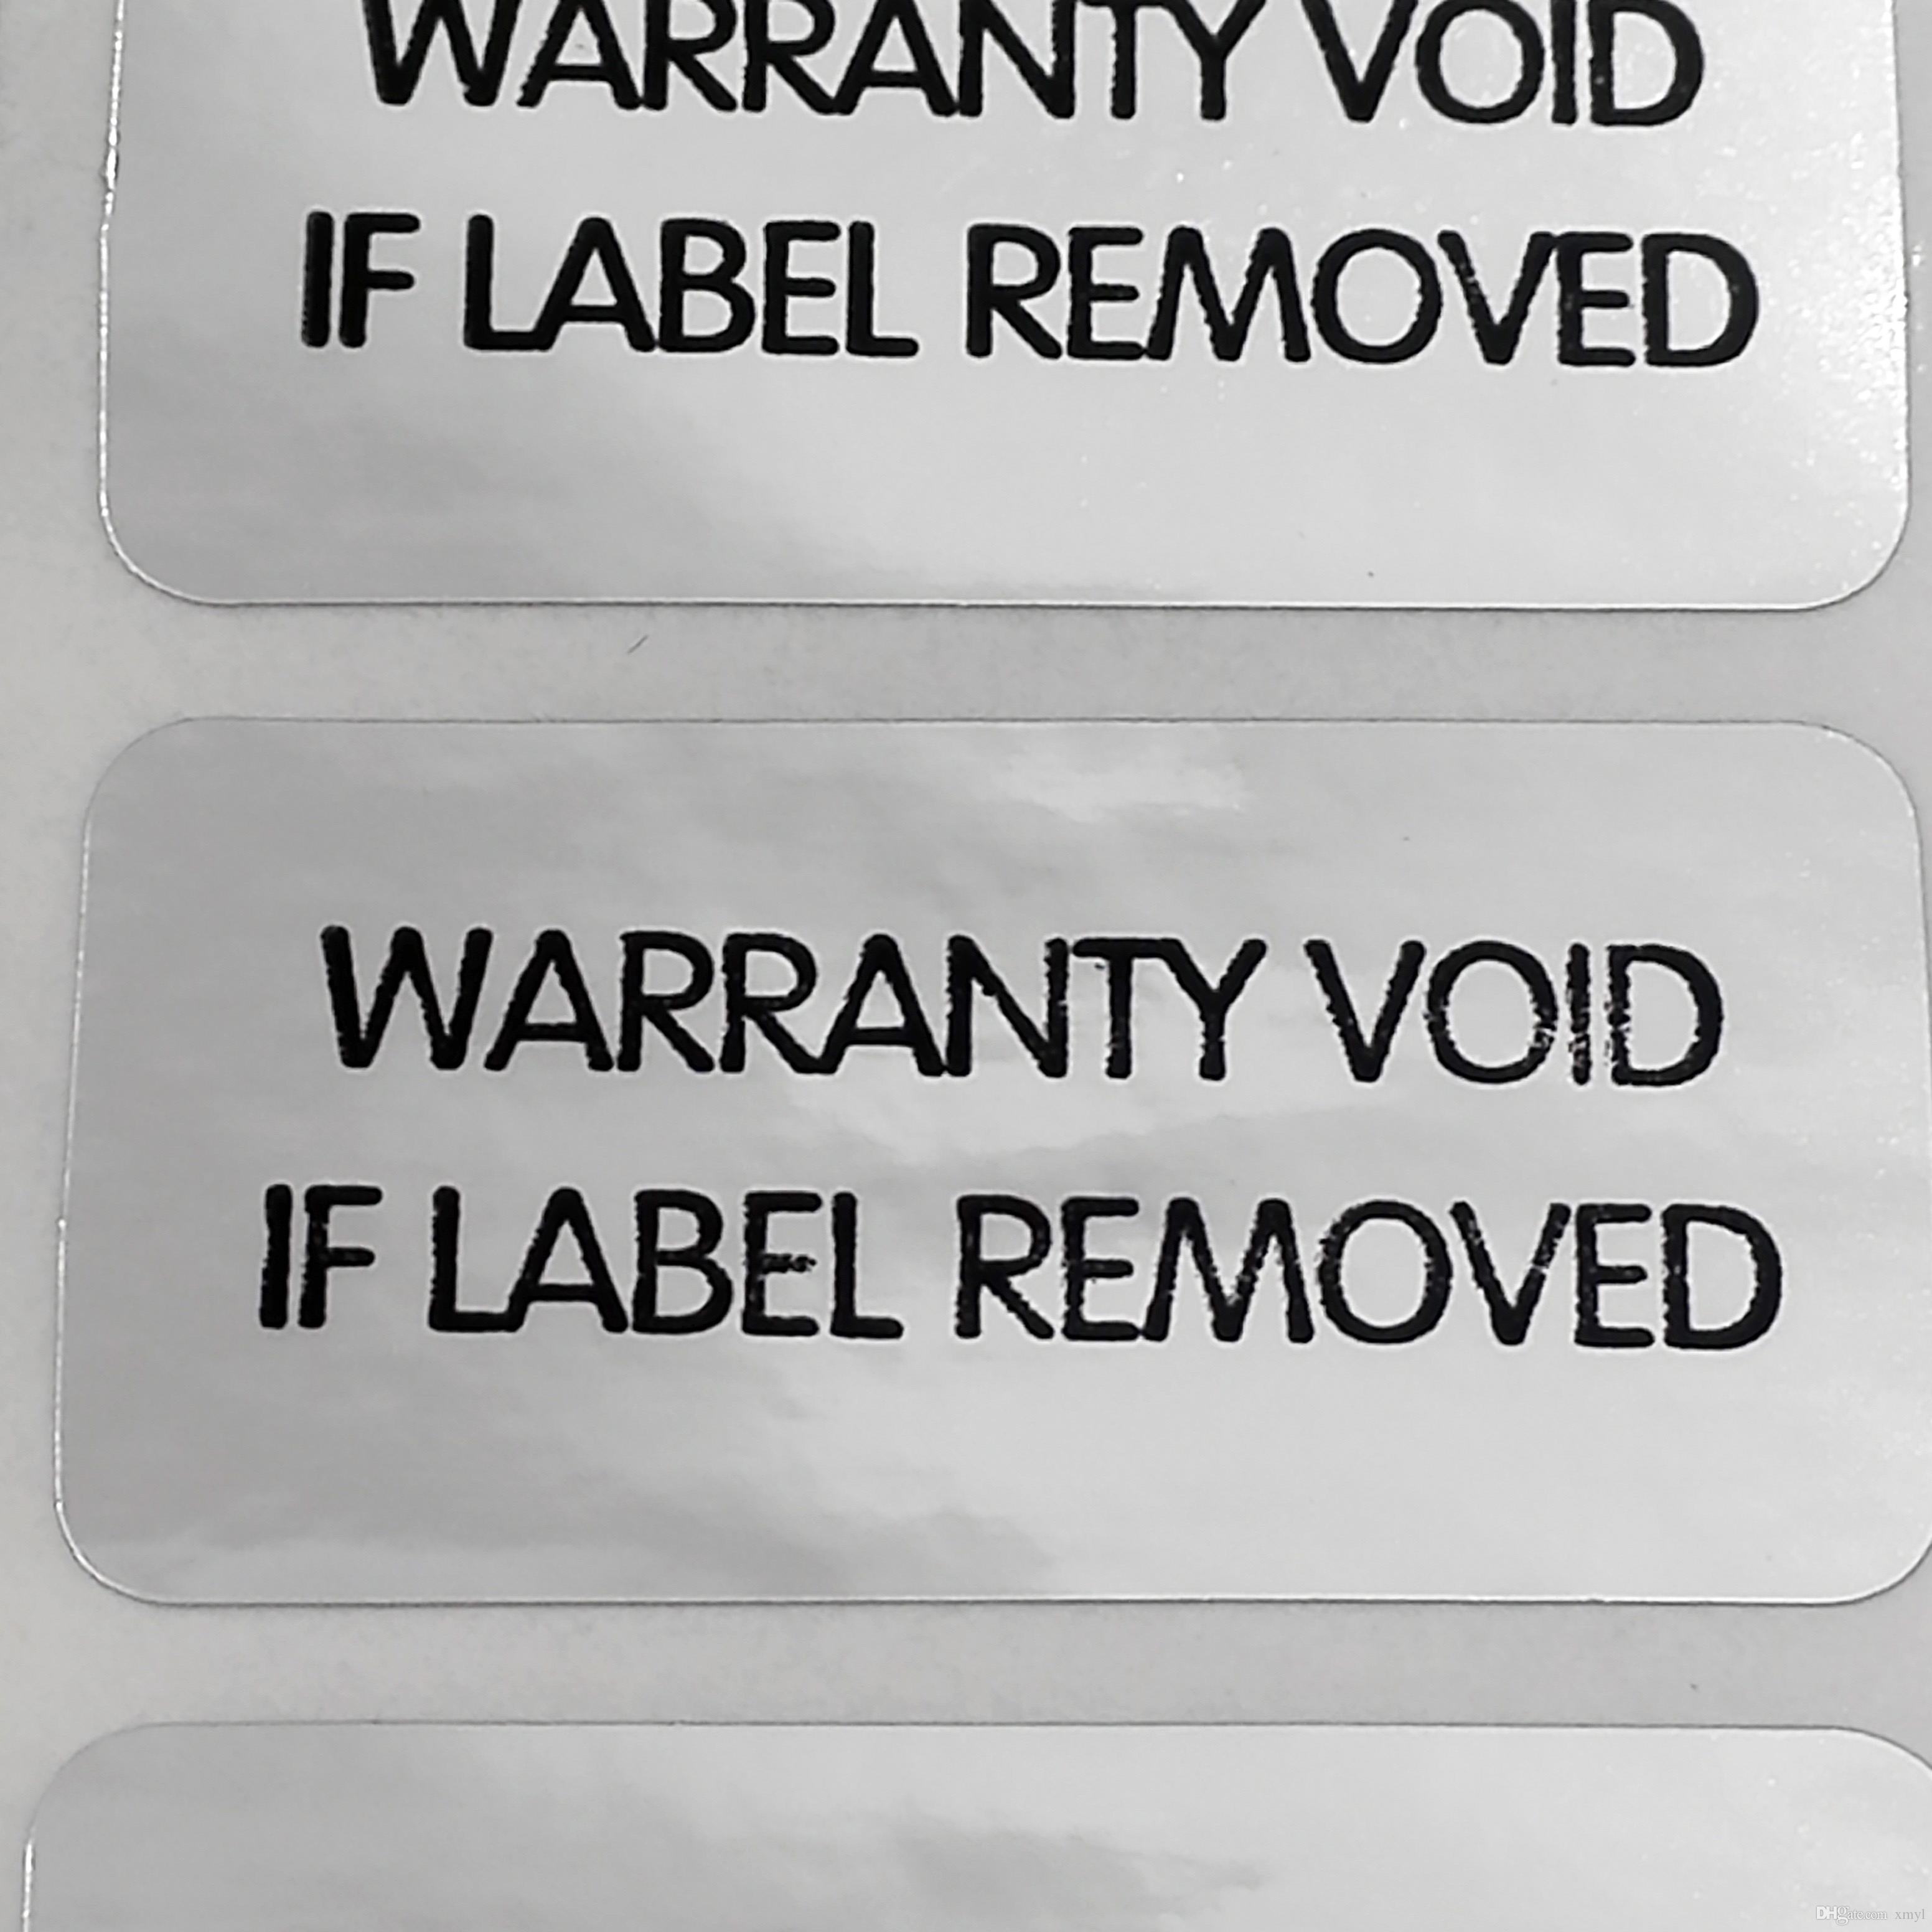 2019 3x1 5cm warranty void if label removed tamper evident packaing label sticker for security item no v32 from xmyl 150 76 dhgate com